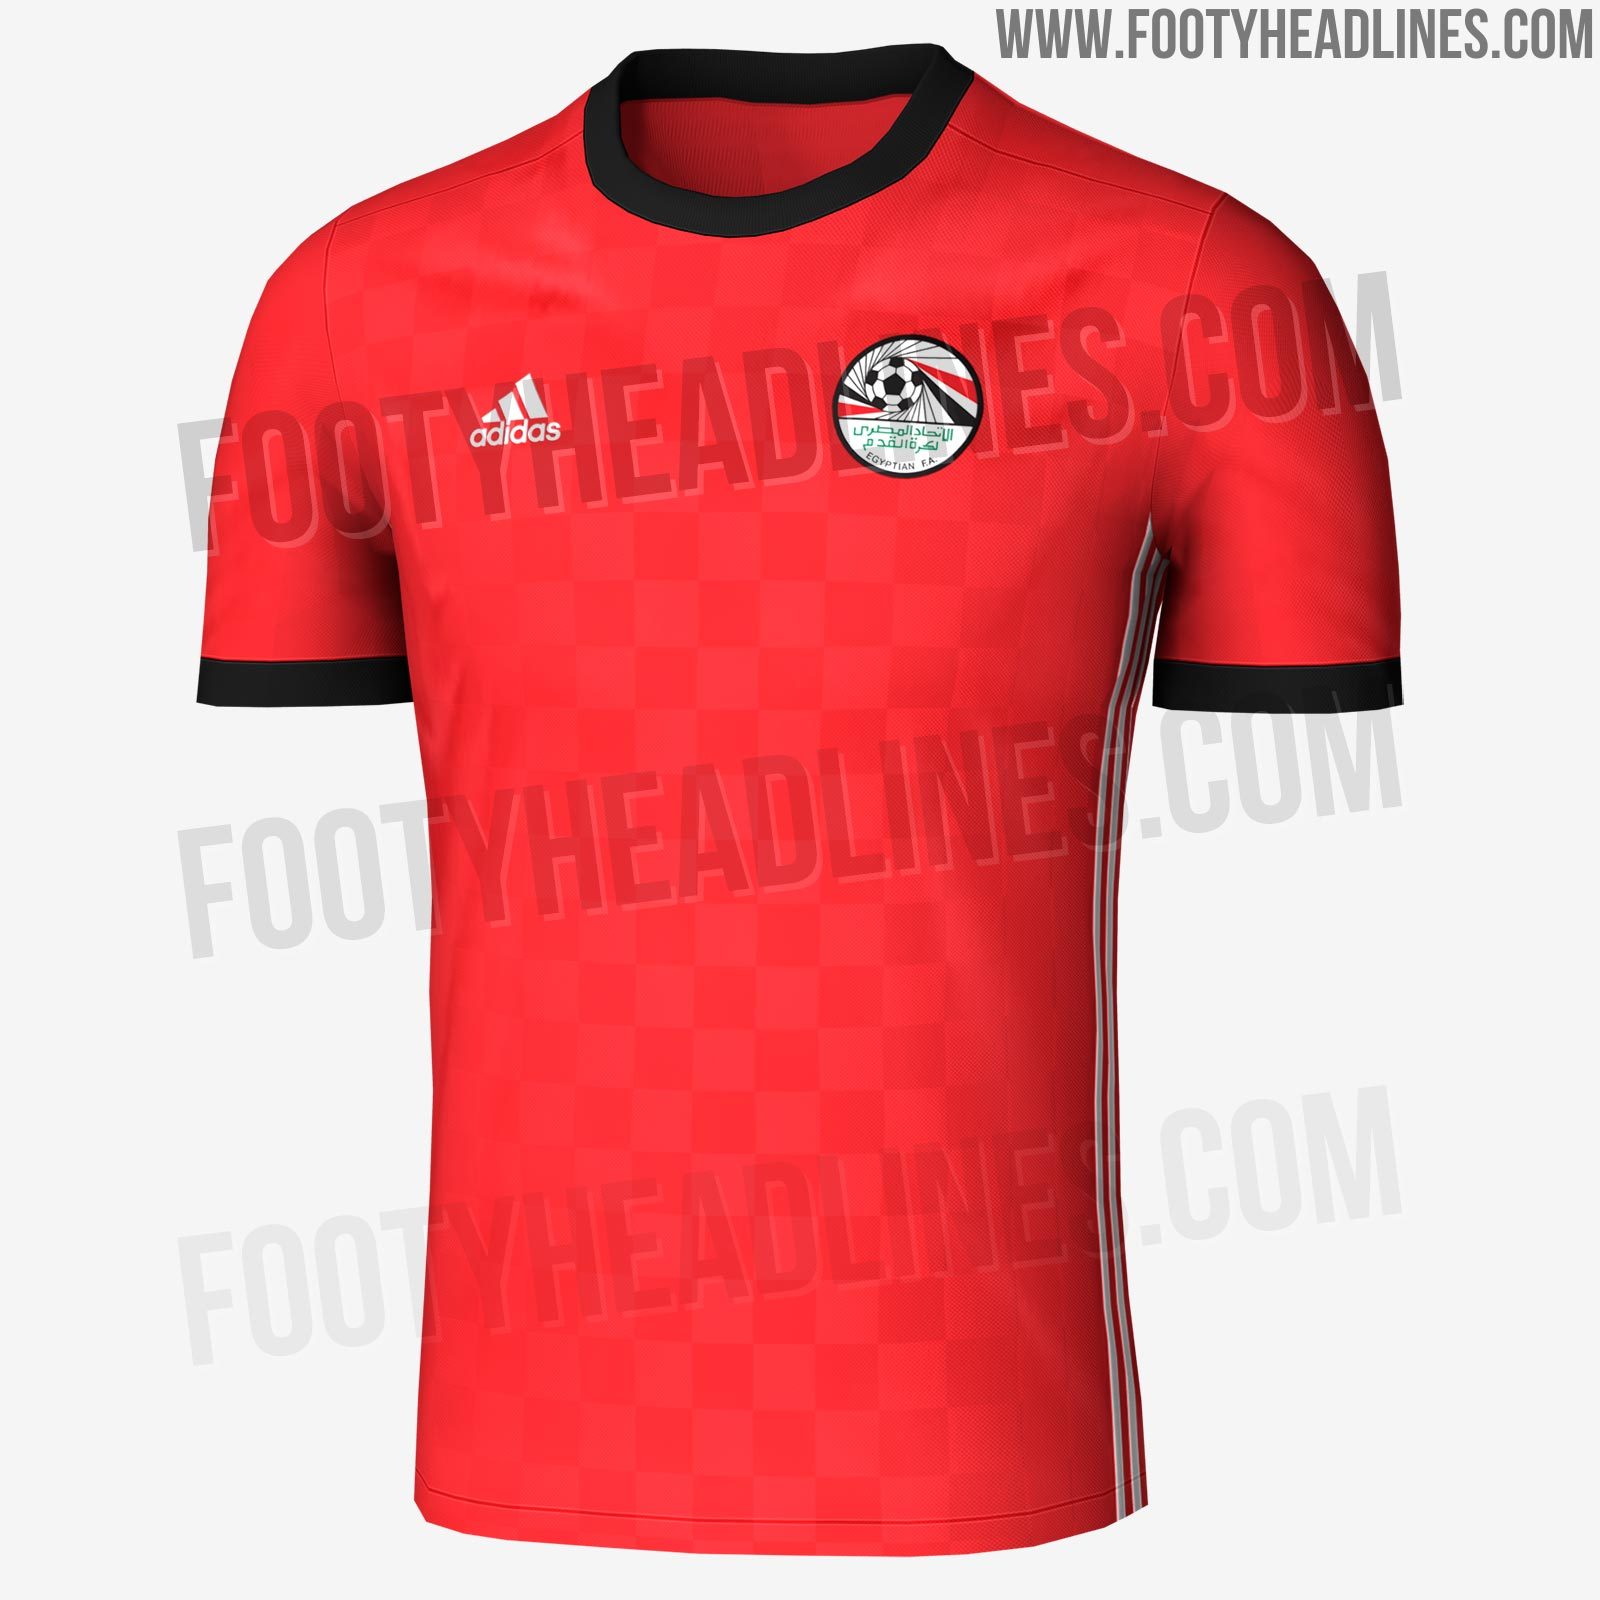 egypt-2018-world-cup-home-kit-2.jpg